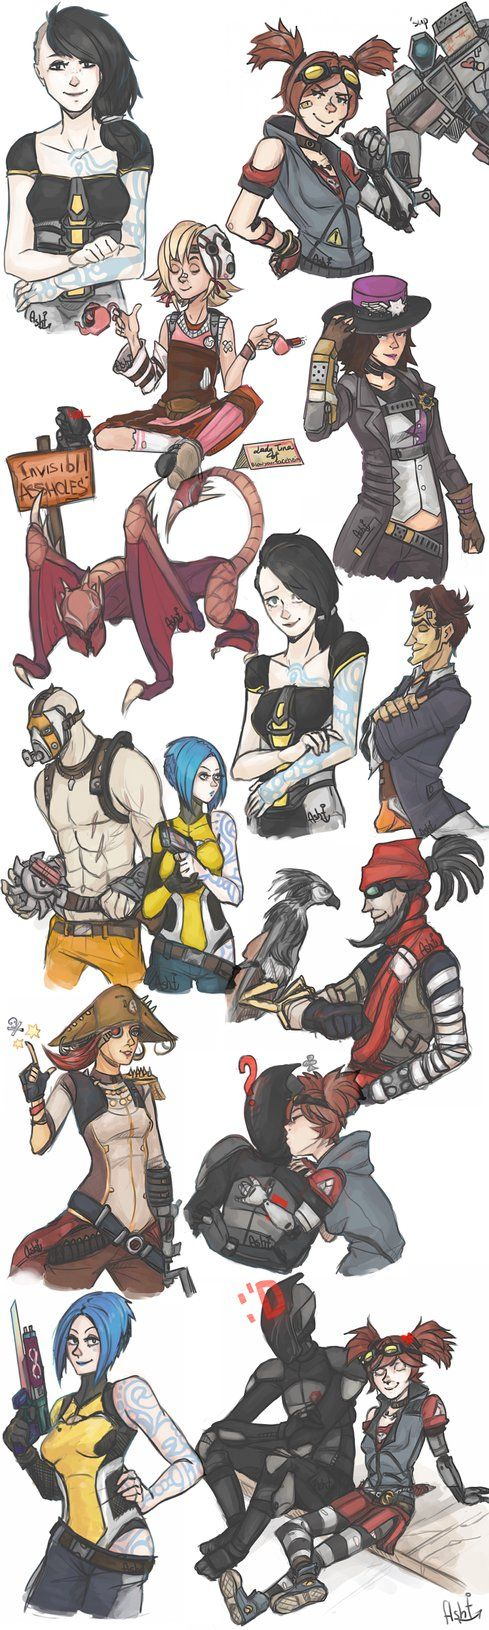 { sketchdump } april 2014 - borderlands. by CarrieAsh